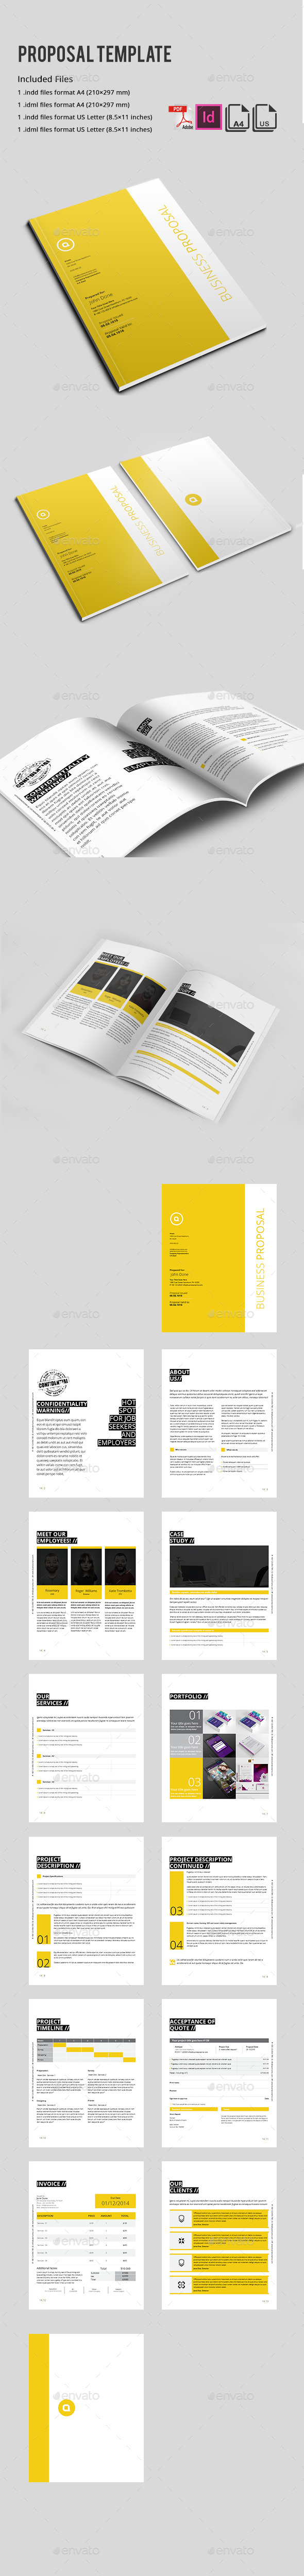 GraphicRiver Proposal Template 9666148